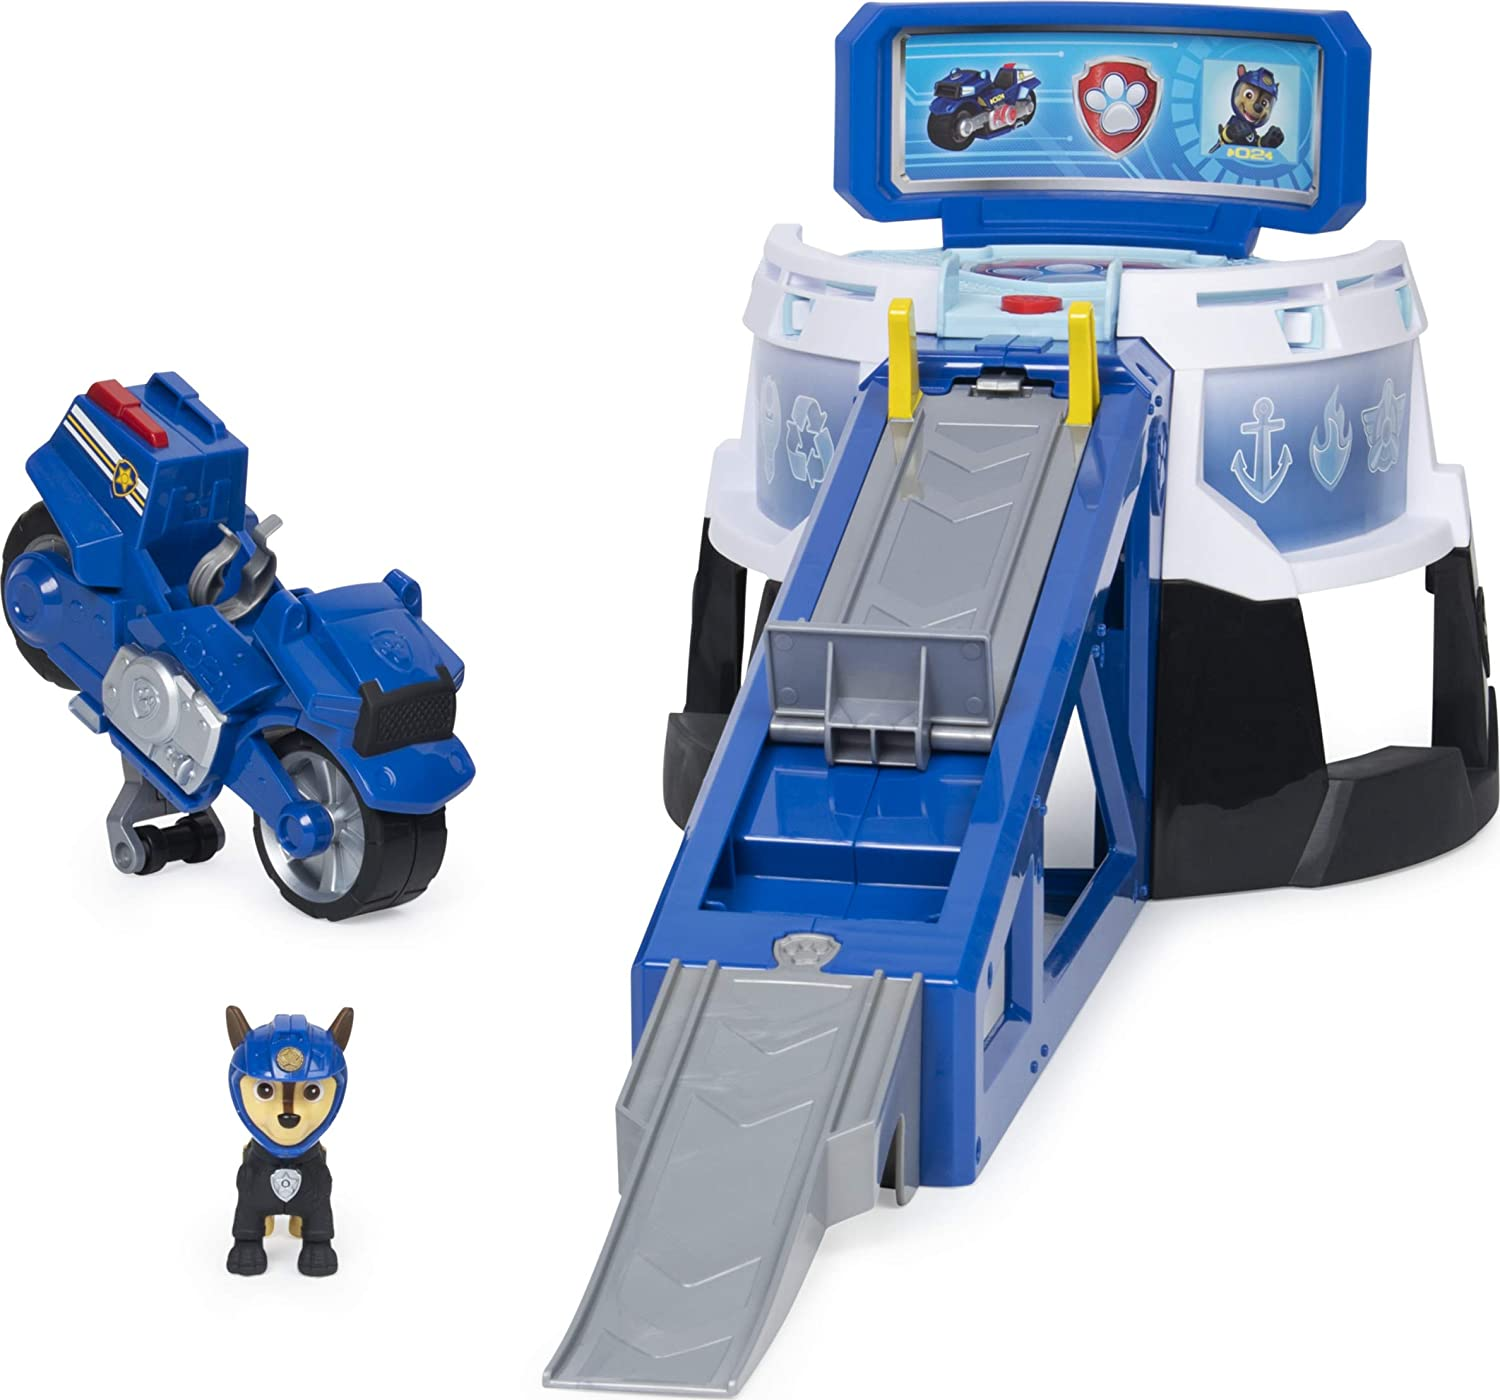 Launcher Moto Pups Chase Paw Patrol